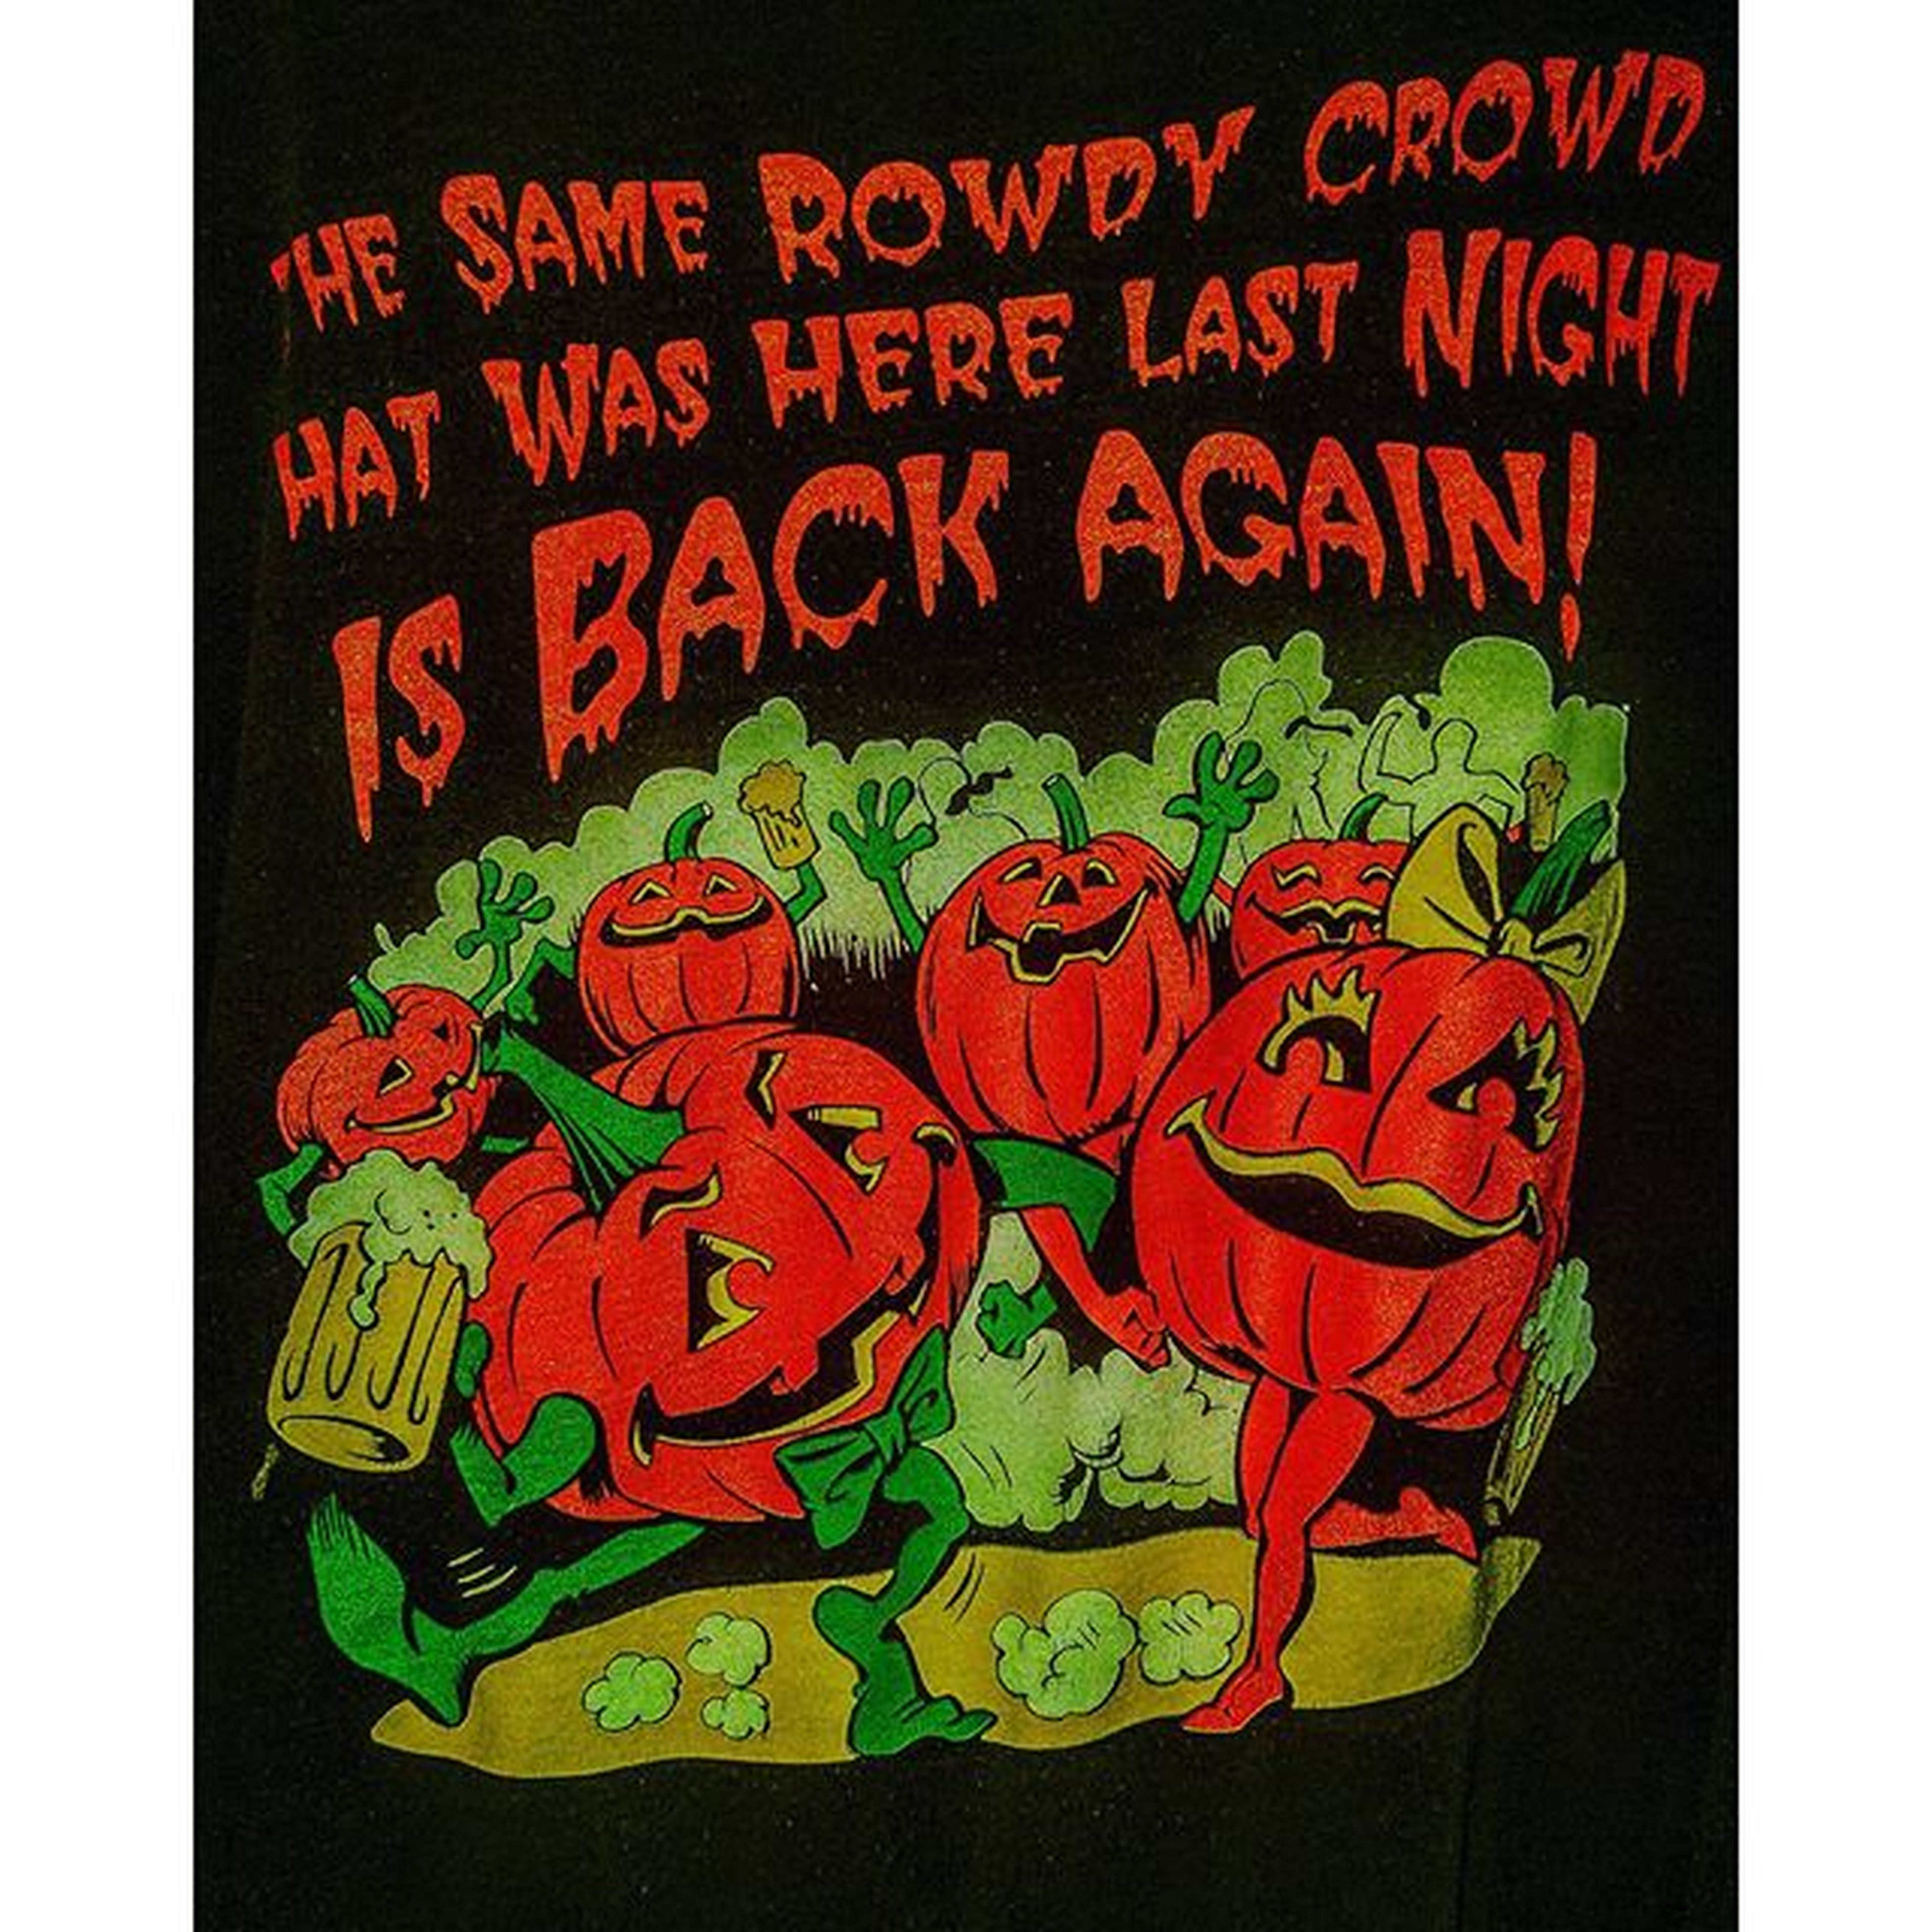 WSP ~ NOLA ~ 2000 So this shirt will be 15 years old on the 28tb. Goodtimesgreatoldies